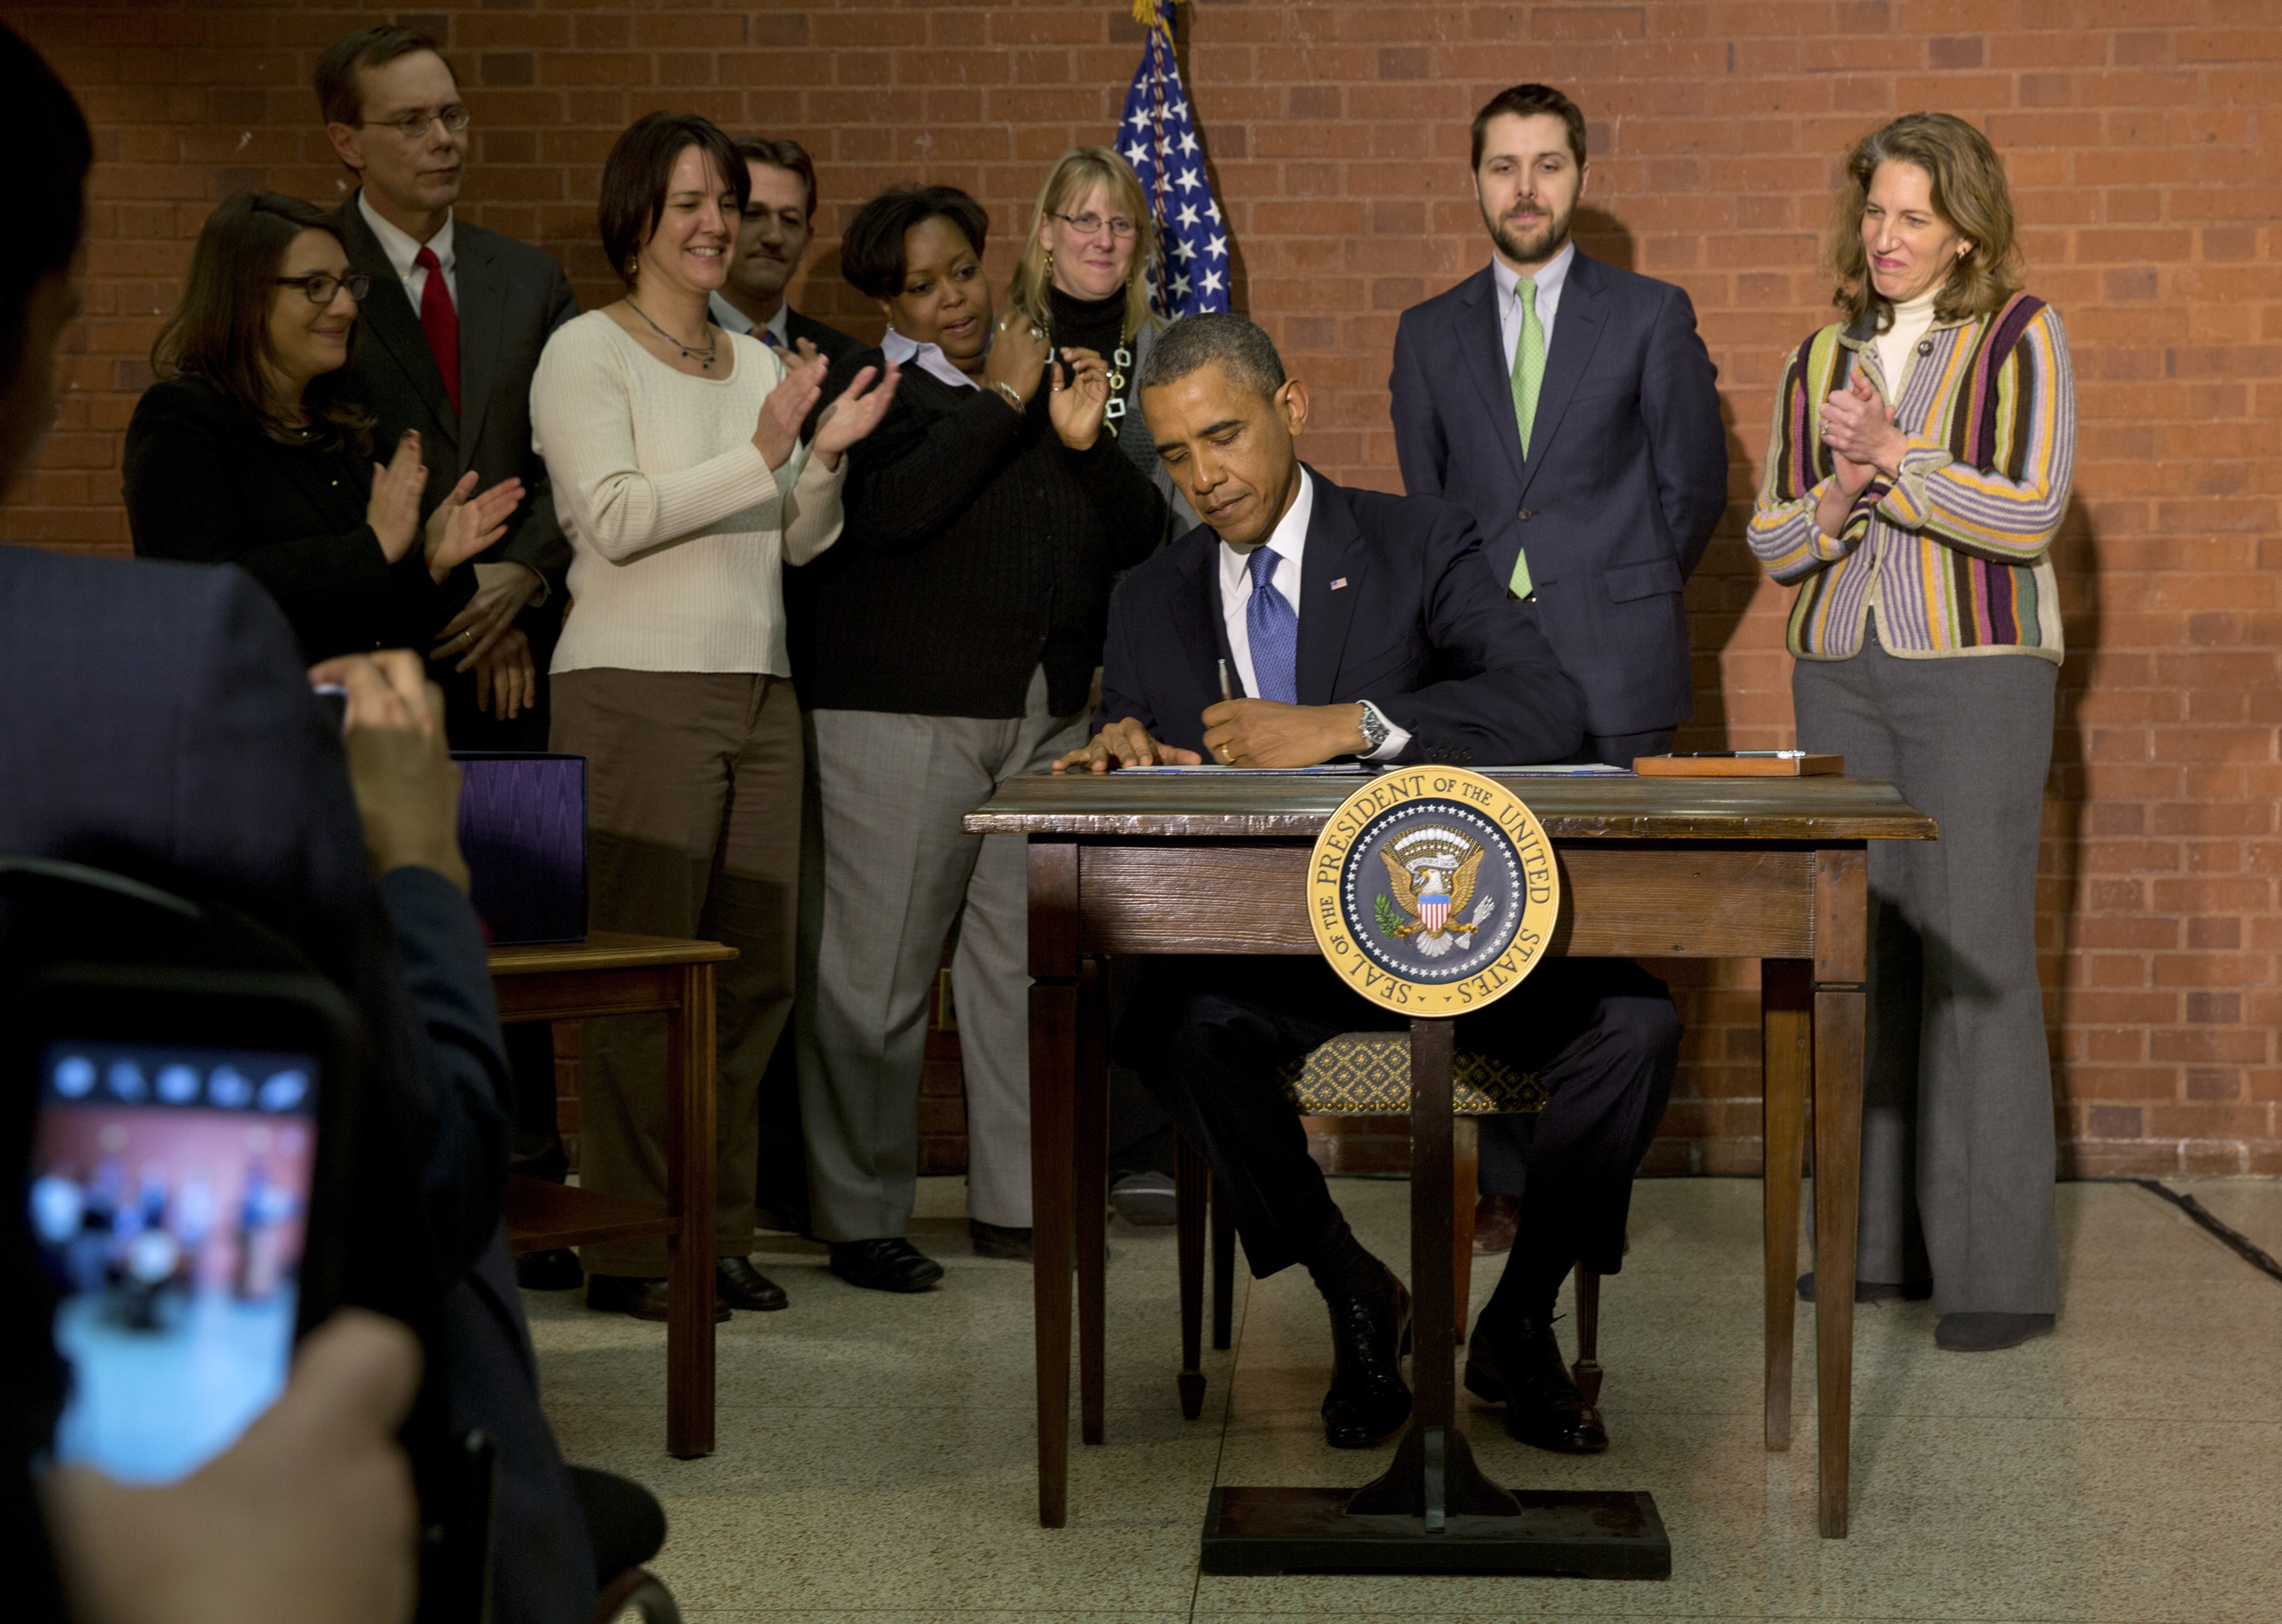 President Obama signs the spending bill that reduces some of the effects of the sequester. (New York Times photo)